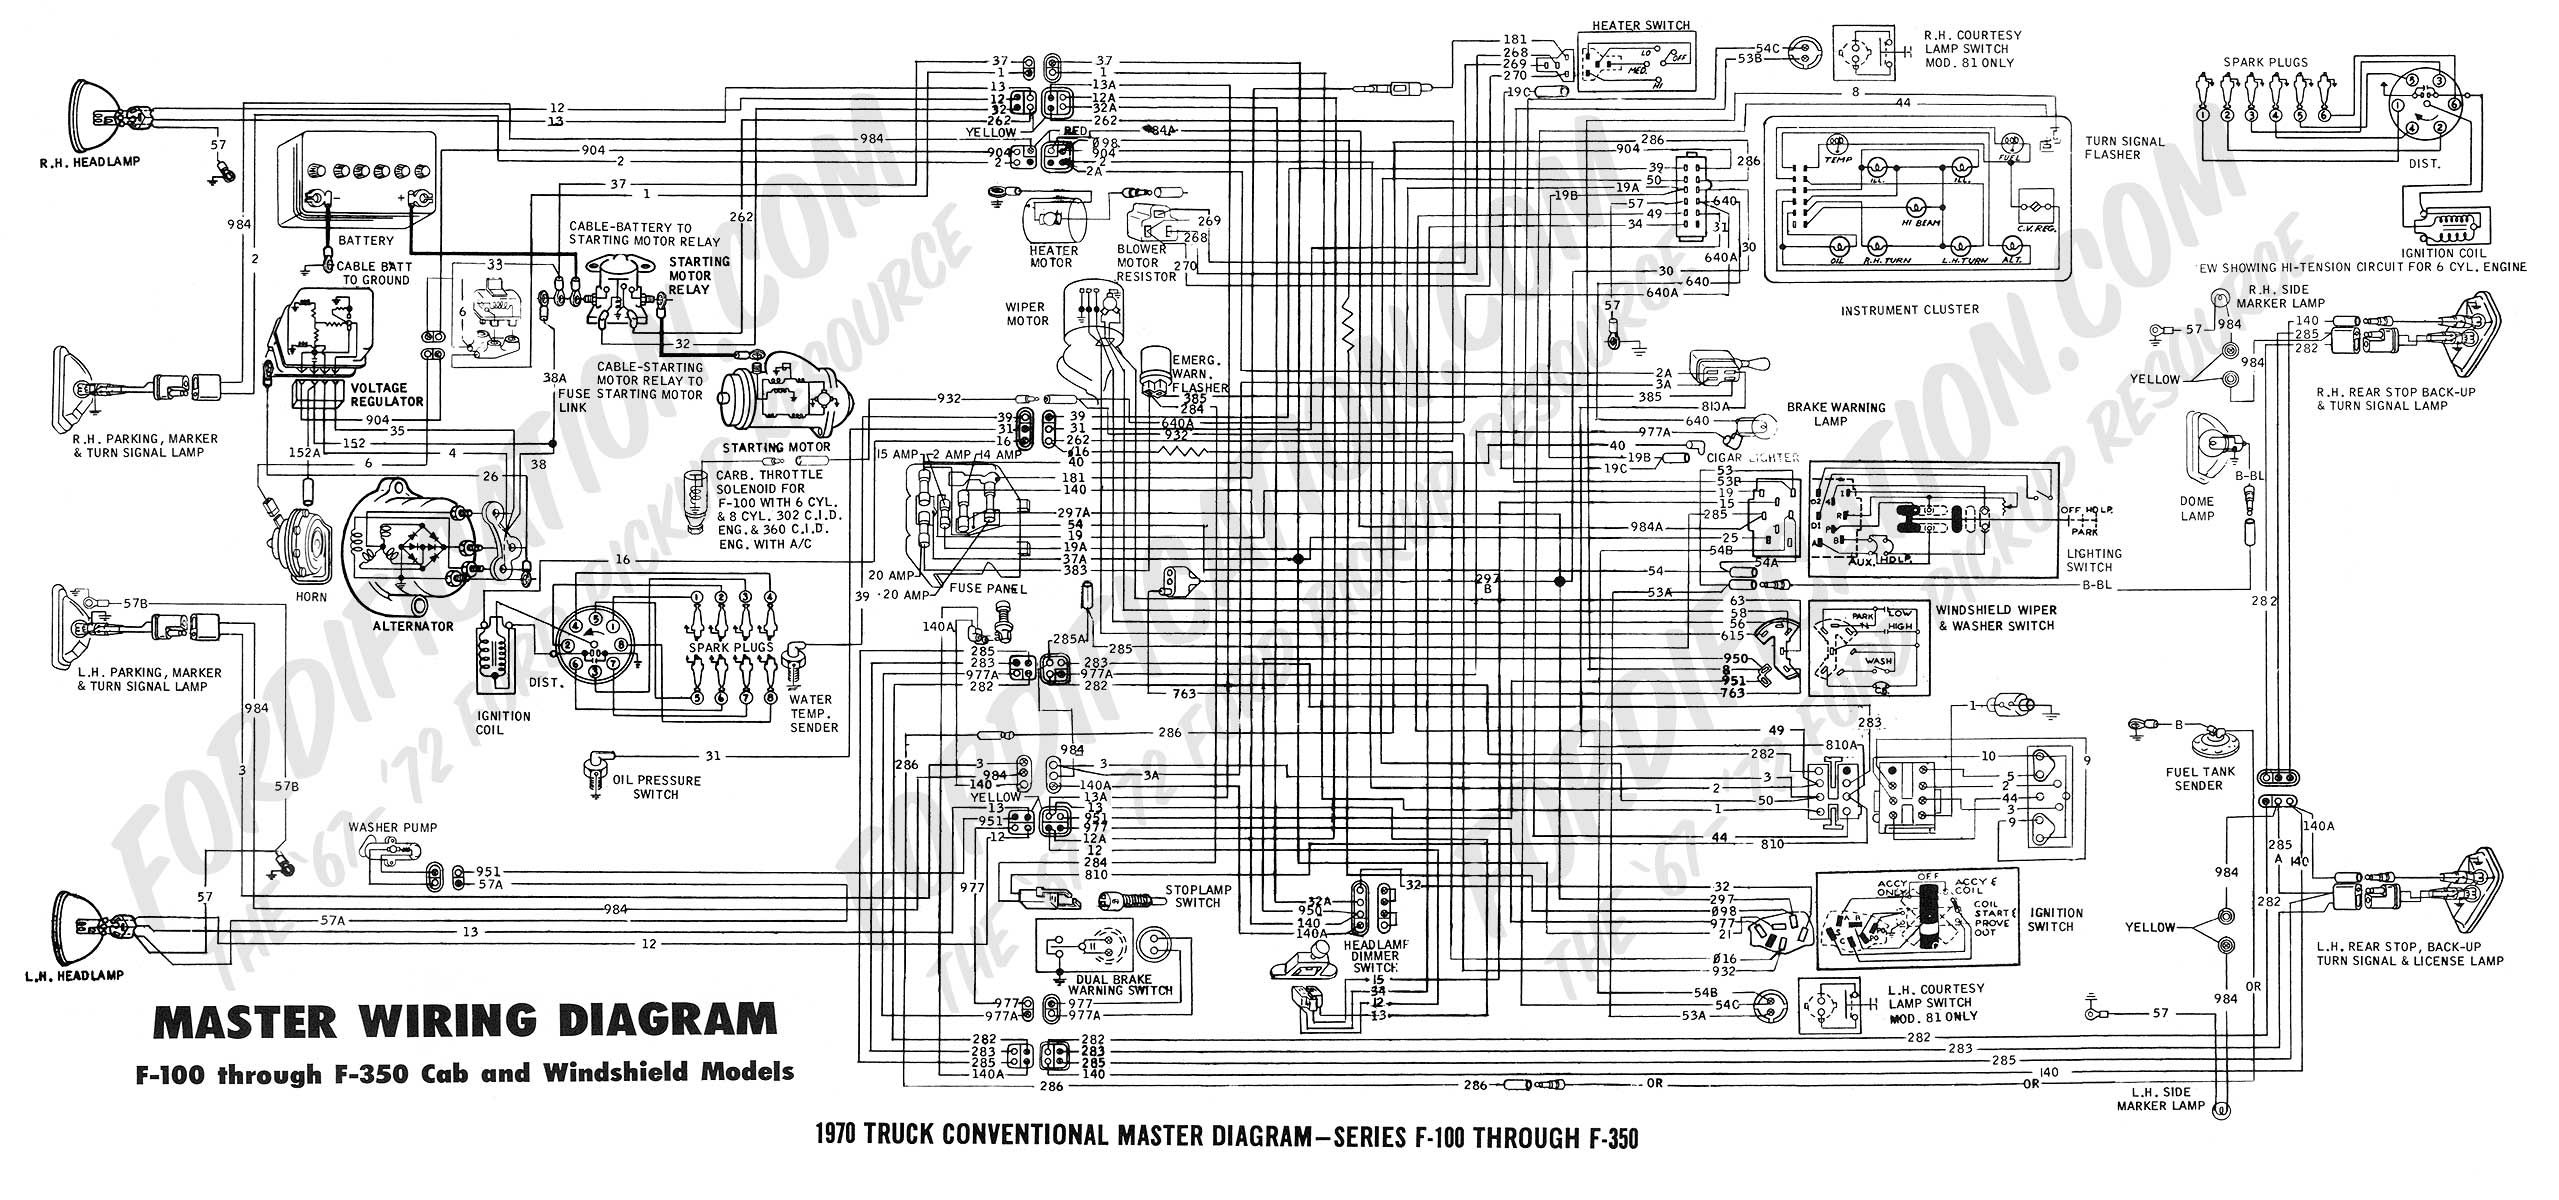 Wiring Diagram For 1988 Ford Ranger - 2006 Jeep Fuse Diagram -  tomosa35.lalu.decorresine.ittomosa35.lalu.decorresine.it